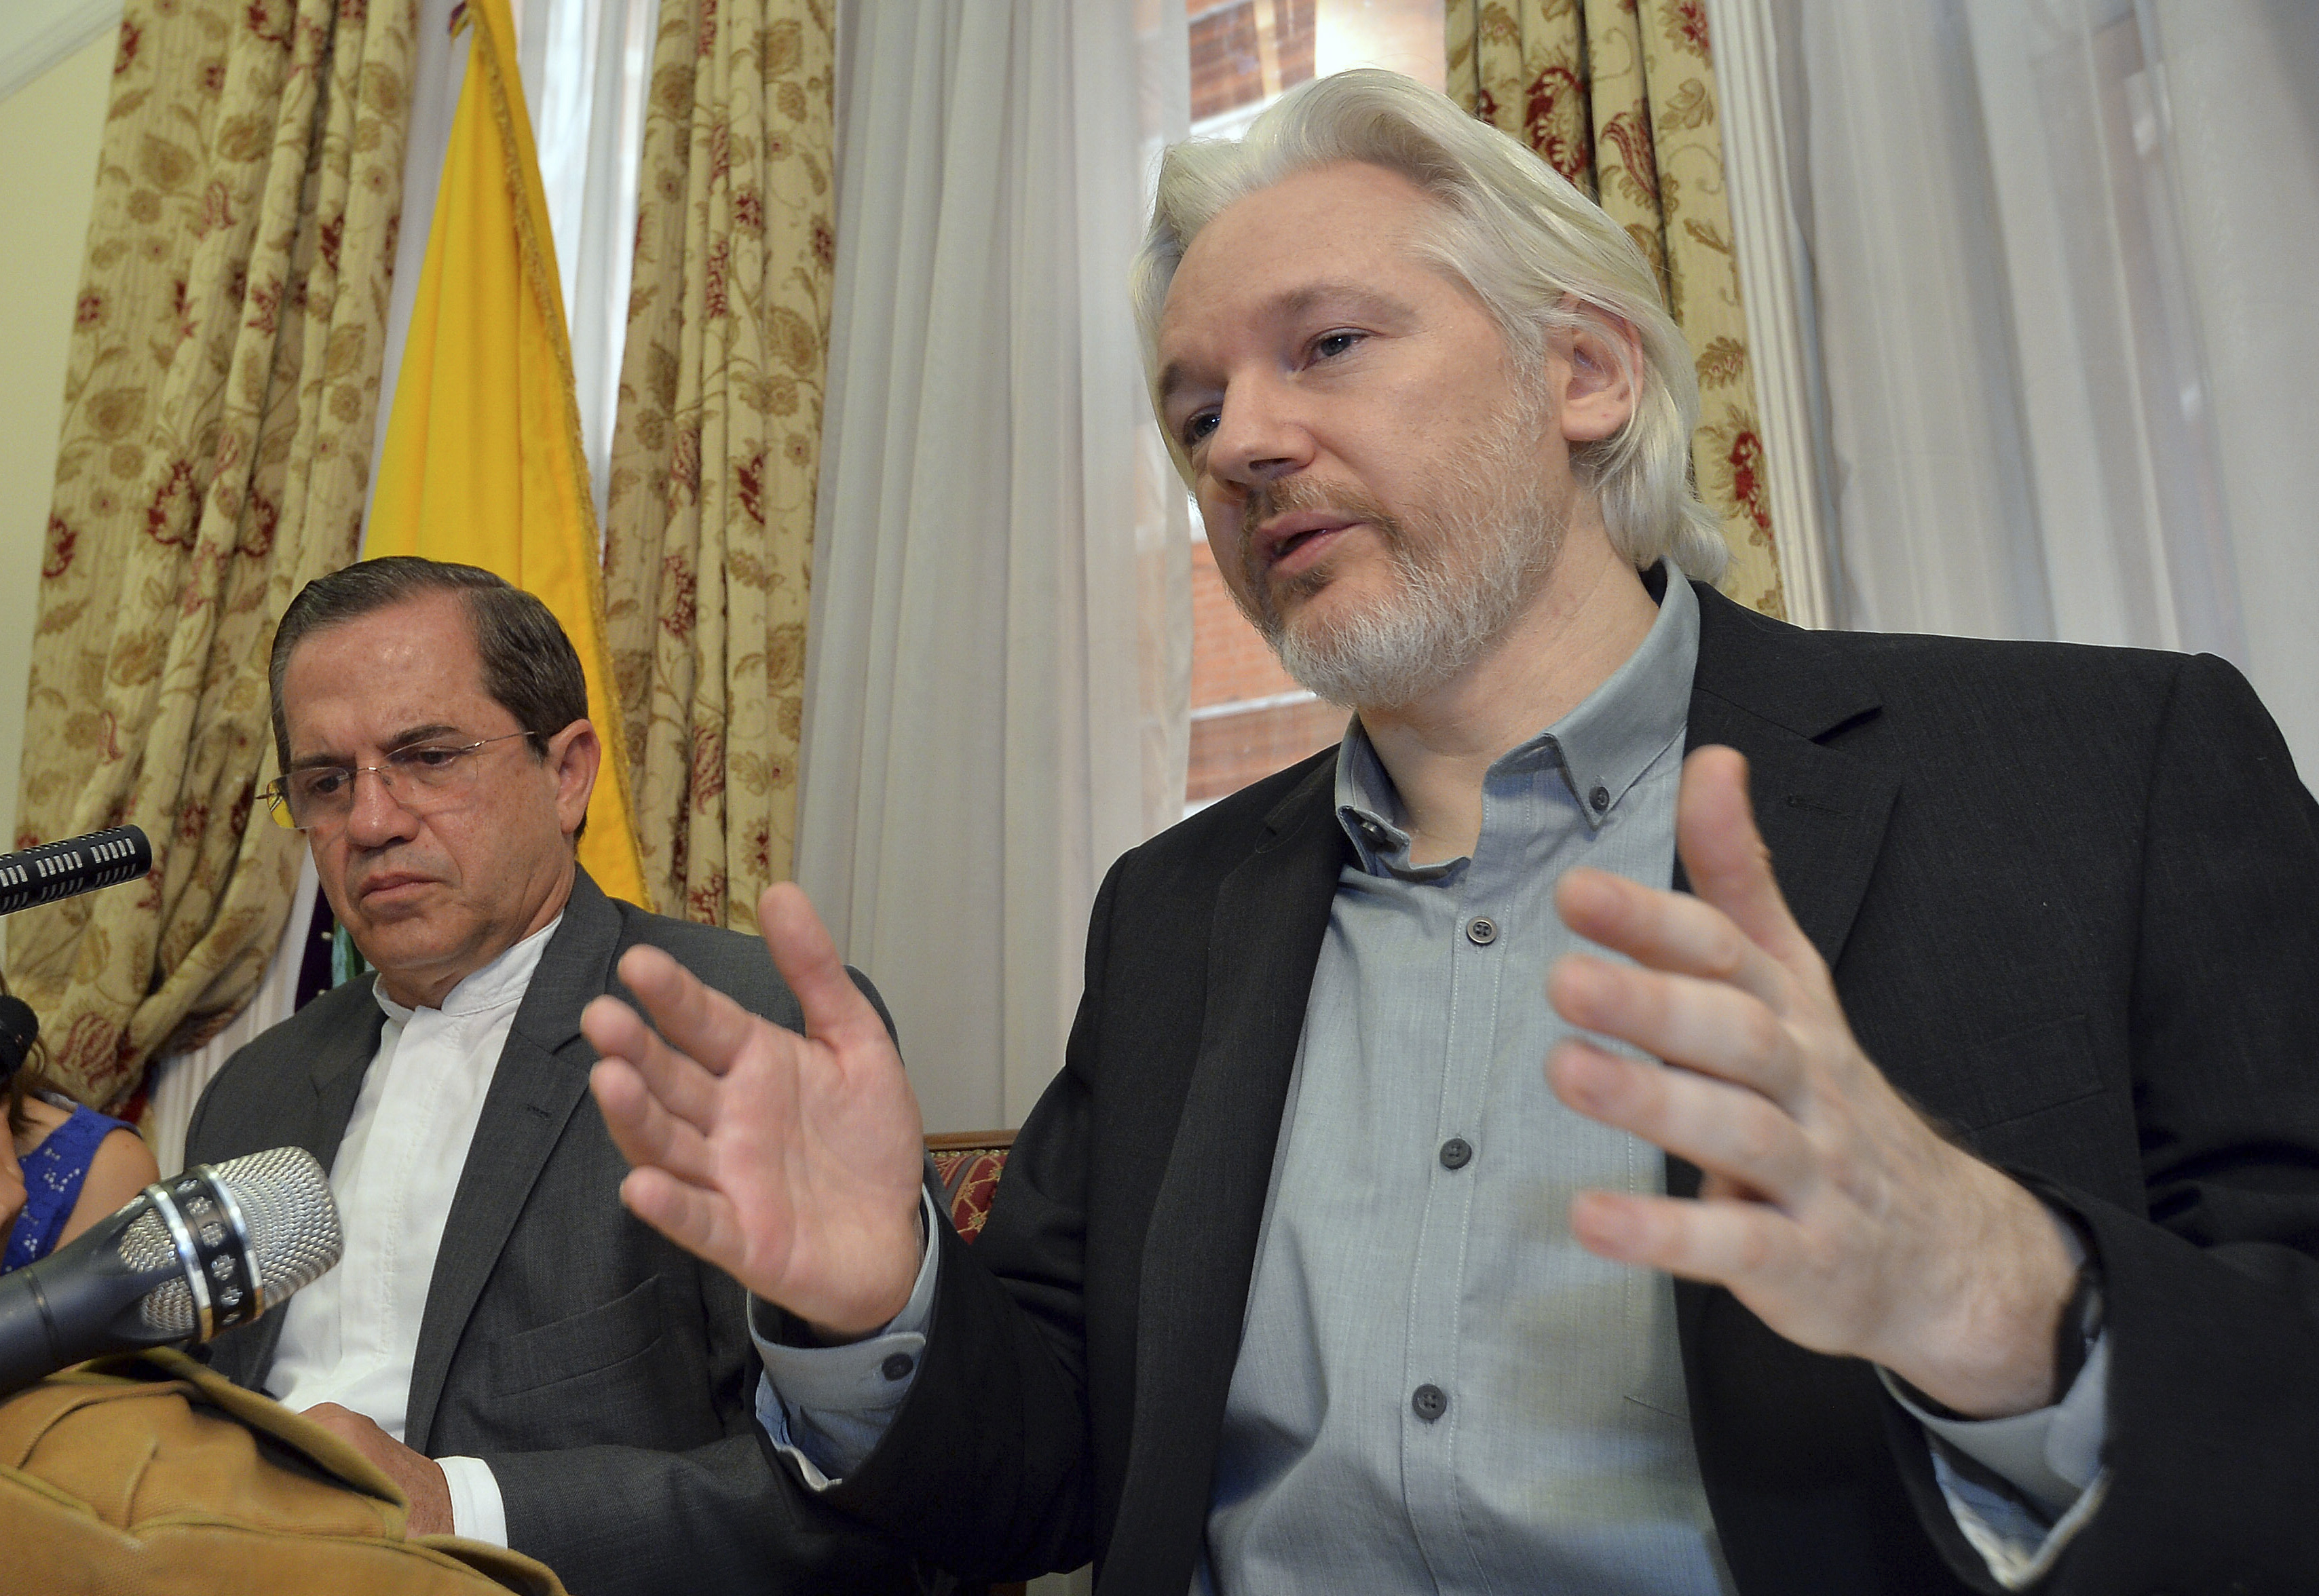 WikiLeaks founder Julian Assange (R) speaks as Ecuador's Foreign Affairs Minister Ricardo Patino listens, during a news conference at the Ecuadorian embassy in central London August 18, 2014